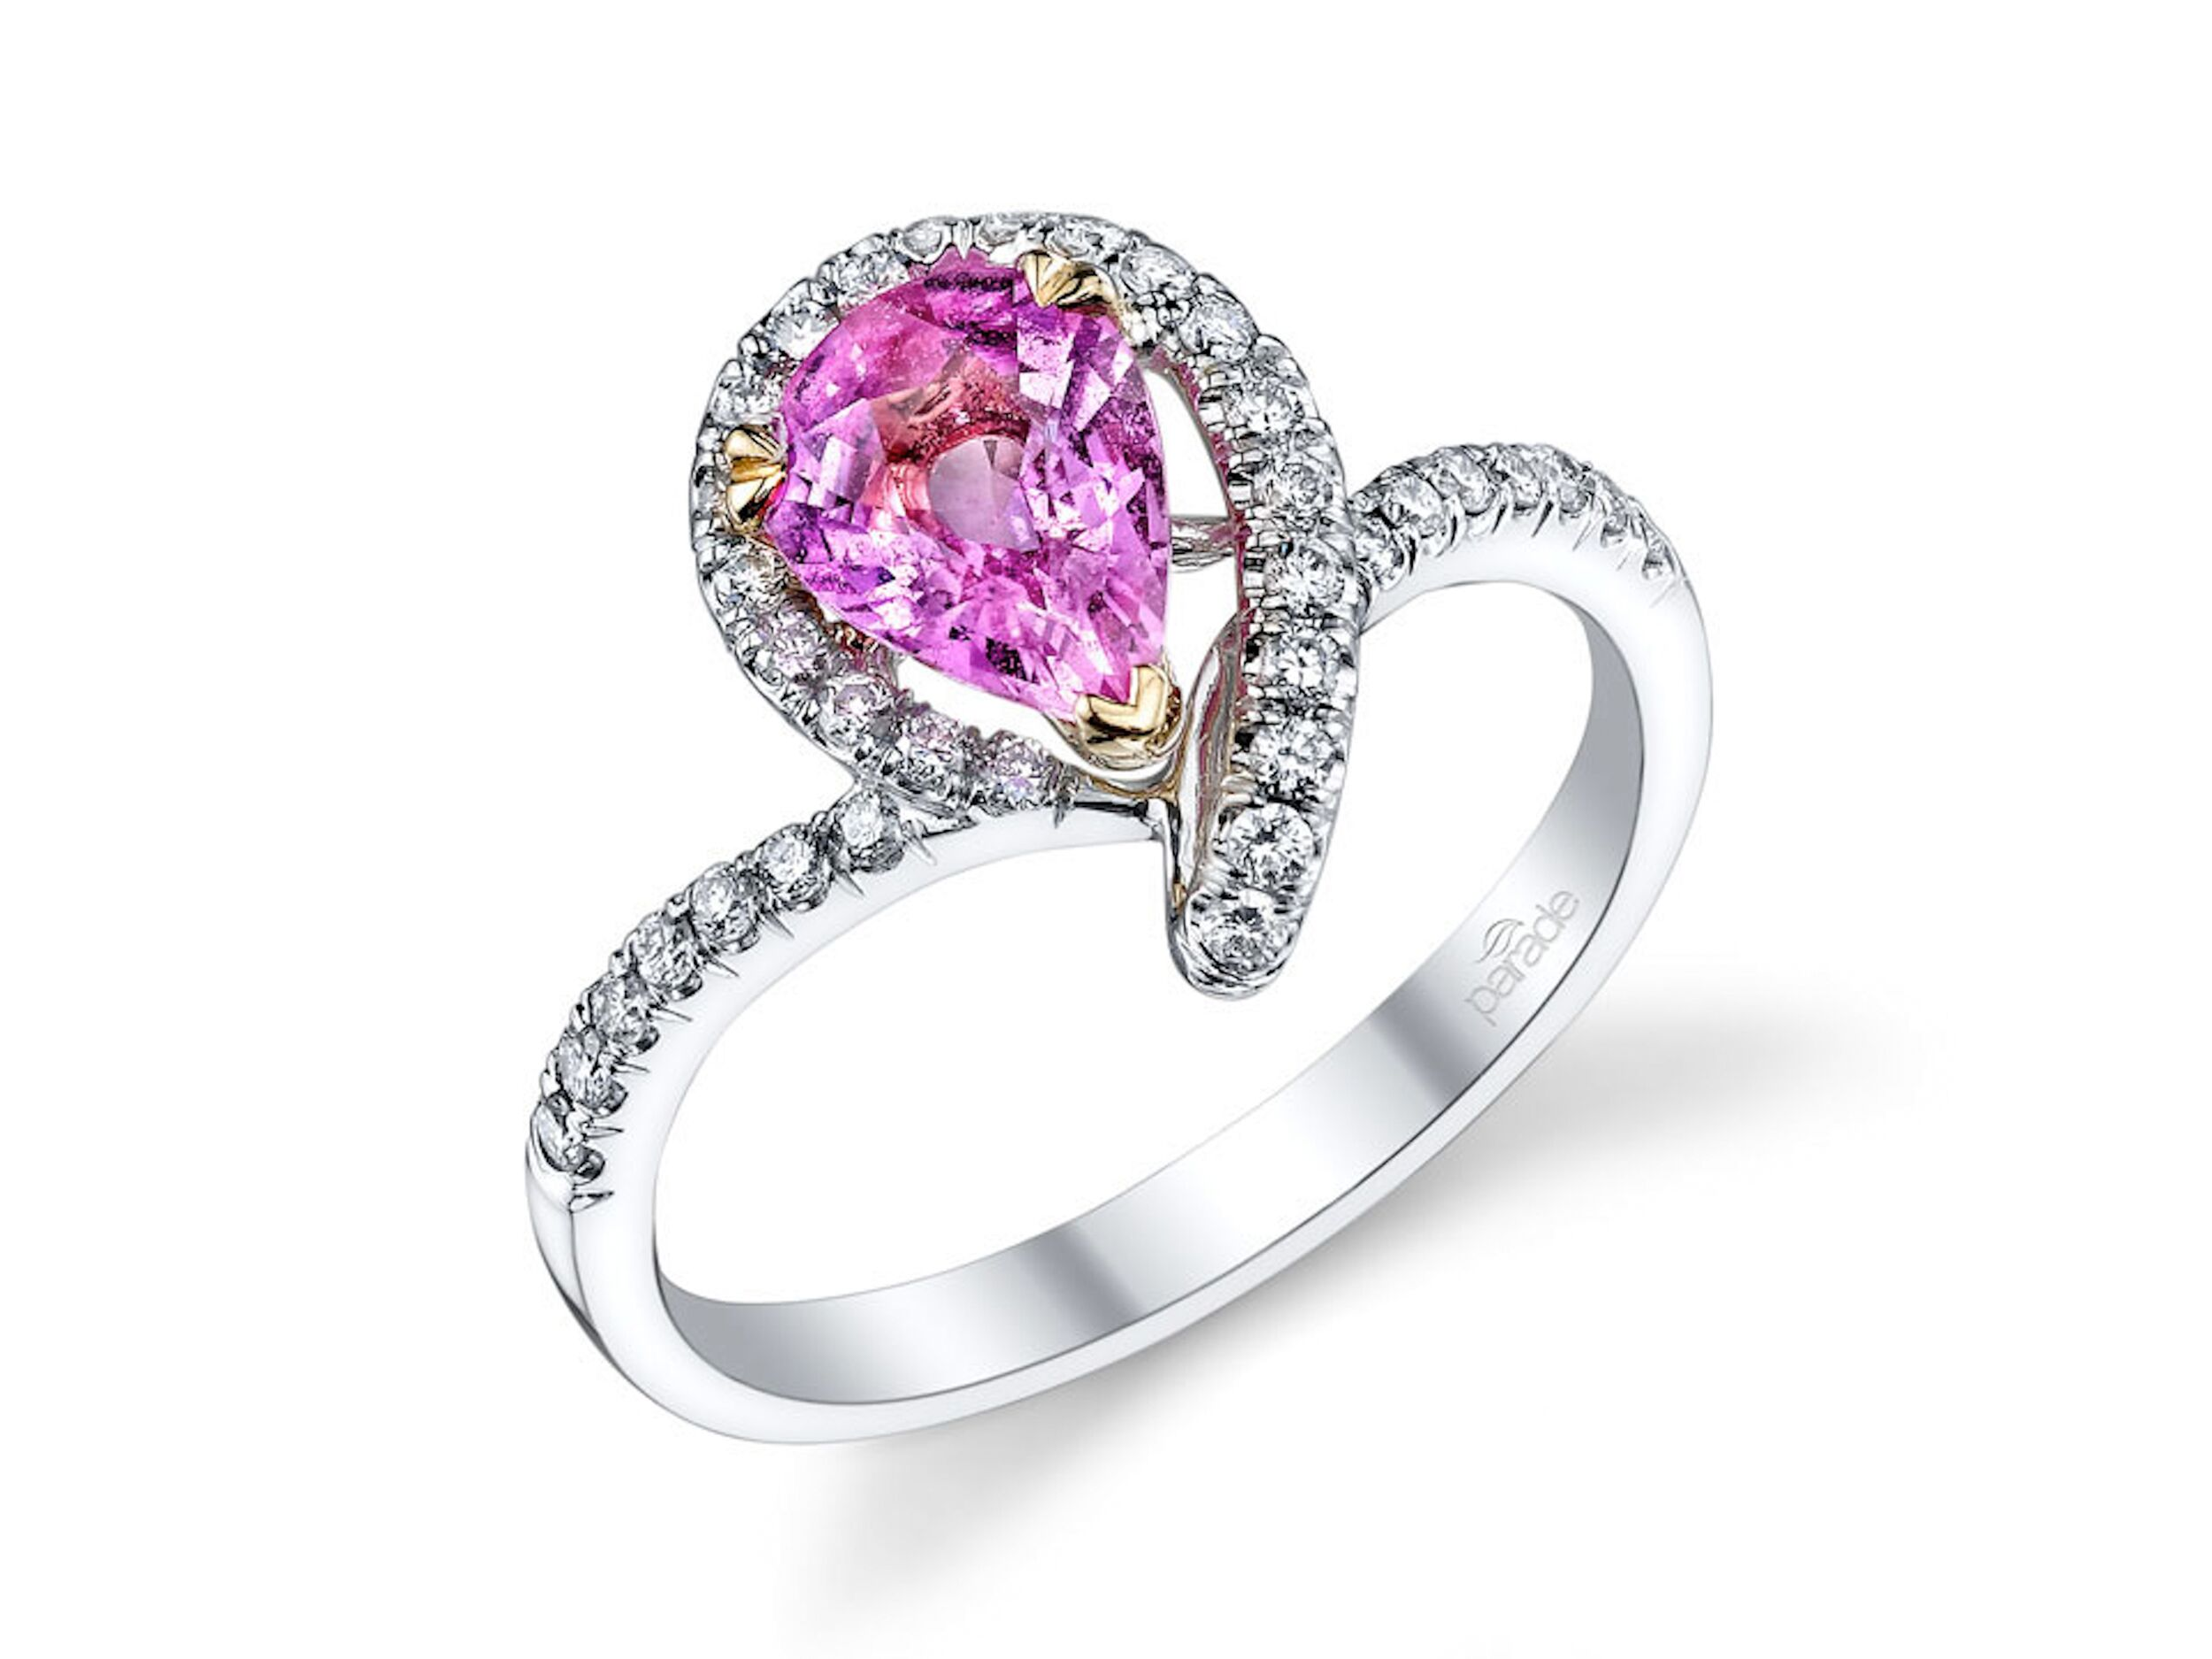 diamonds oval pink jean en rings engagement jewelry eva cut rose ring jewellery la dousset vie argyle diamond play